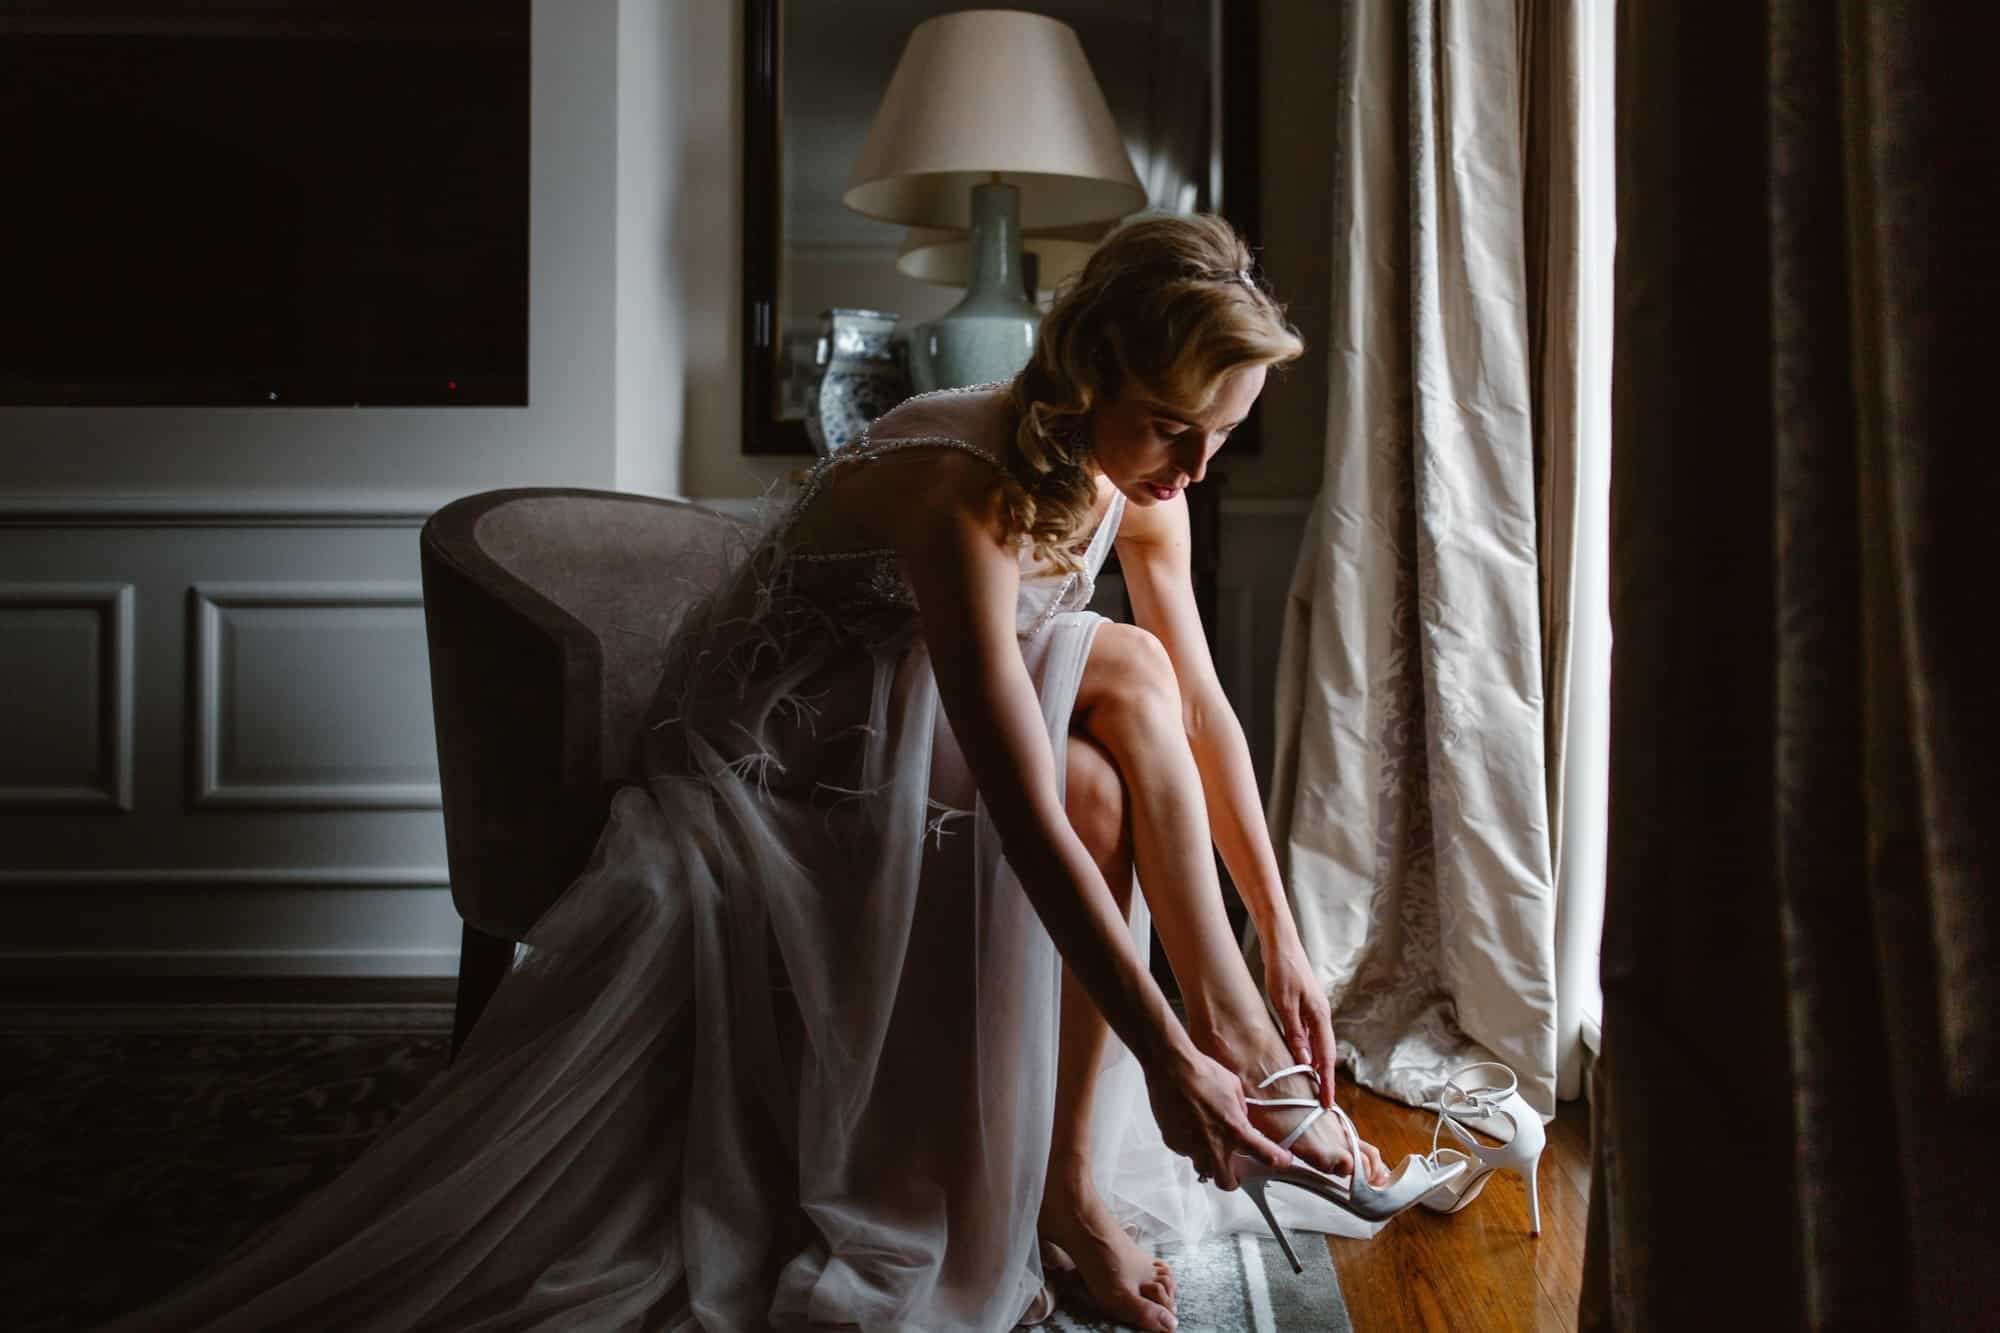 Bride sat putting her wedding shoes on